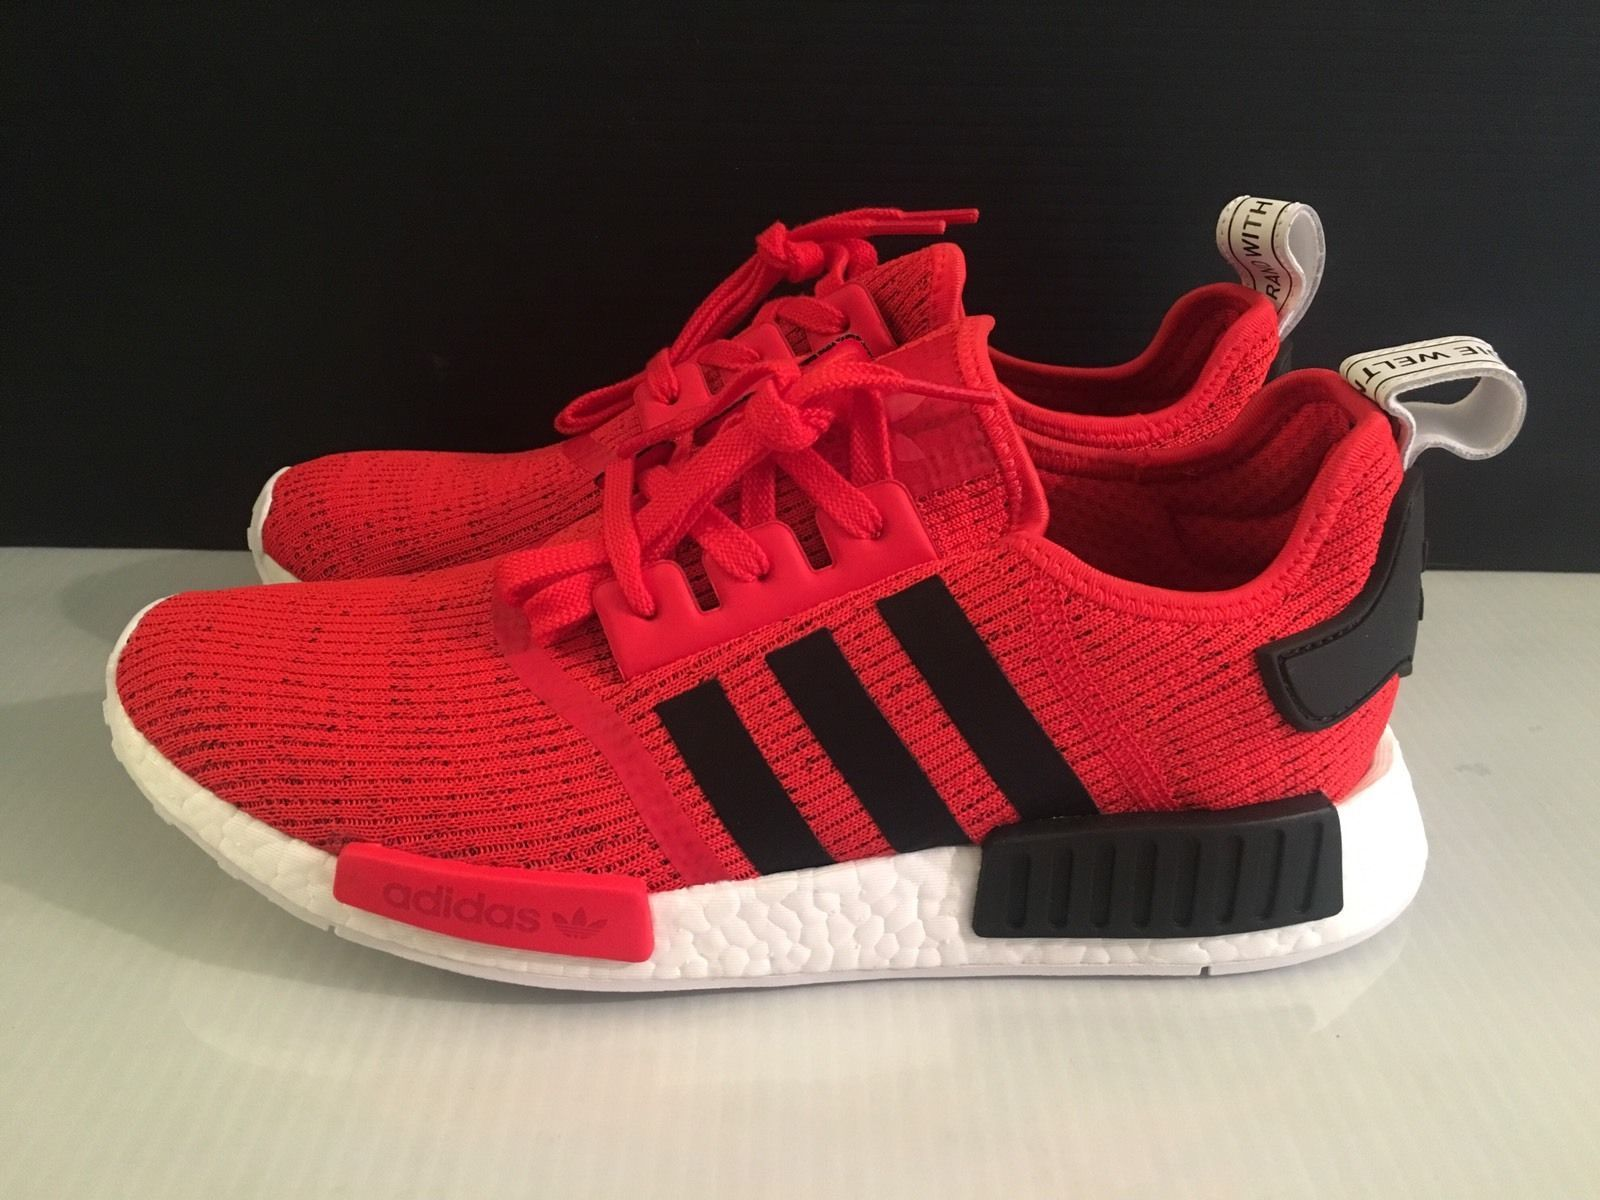 Adidas NMD R1 Core Red Black Trainers | Adidas nmd r1, Black